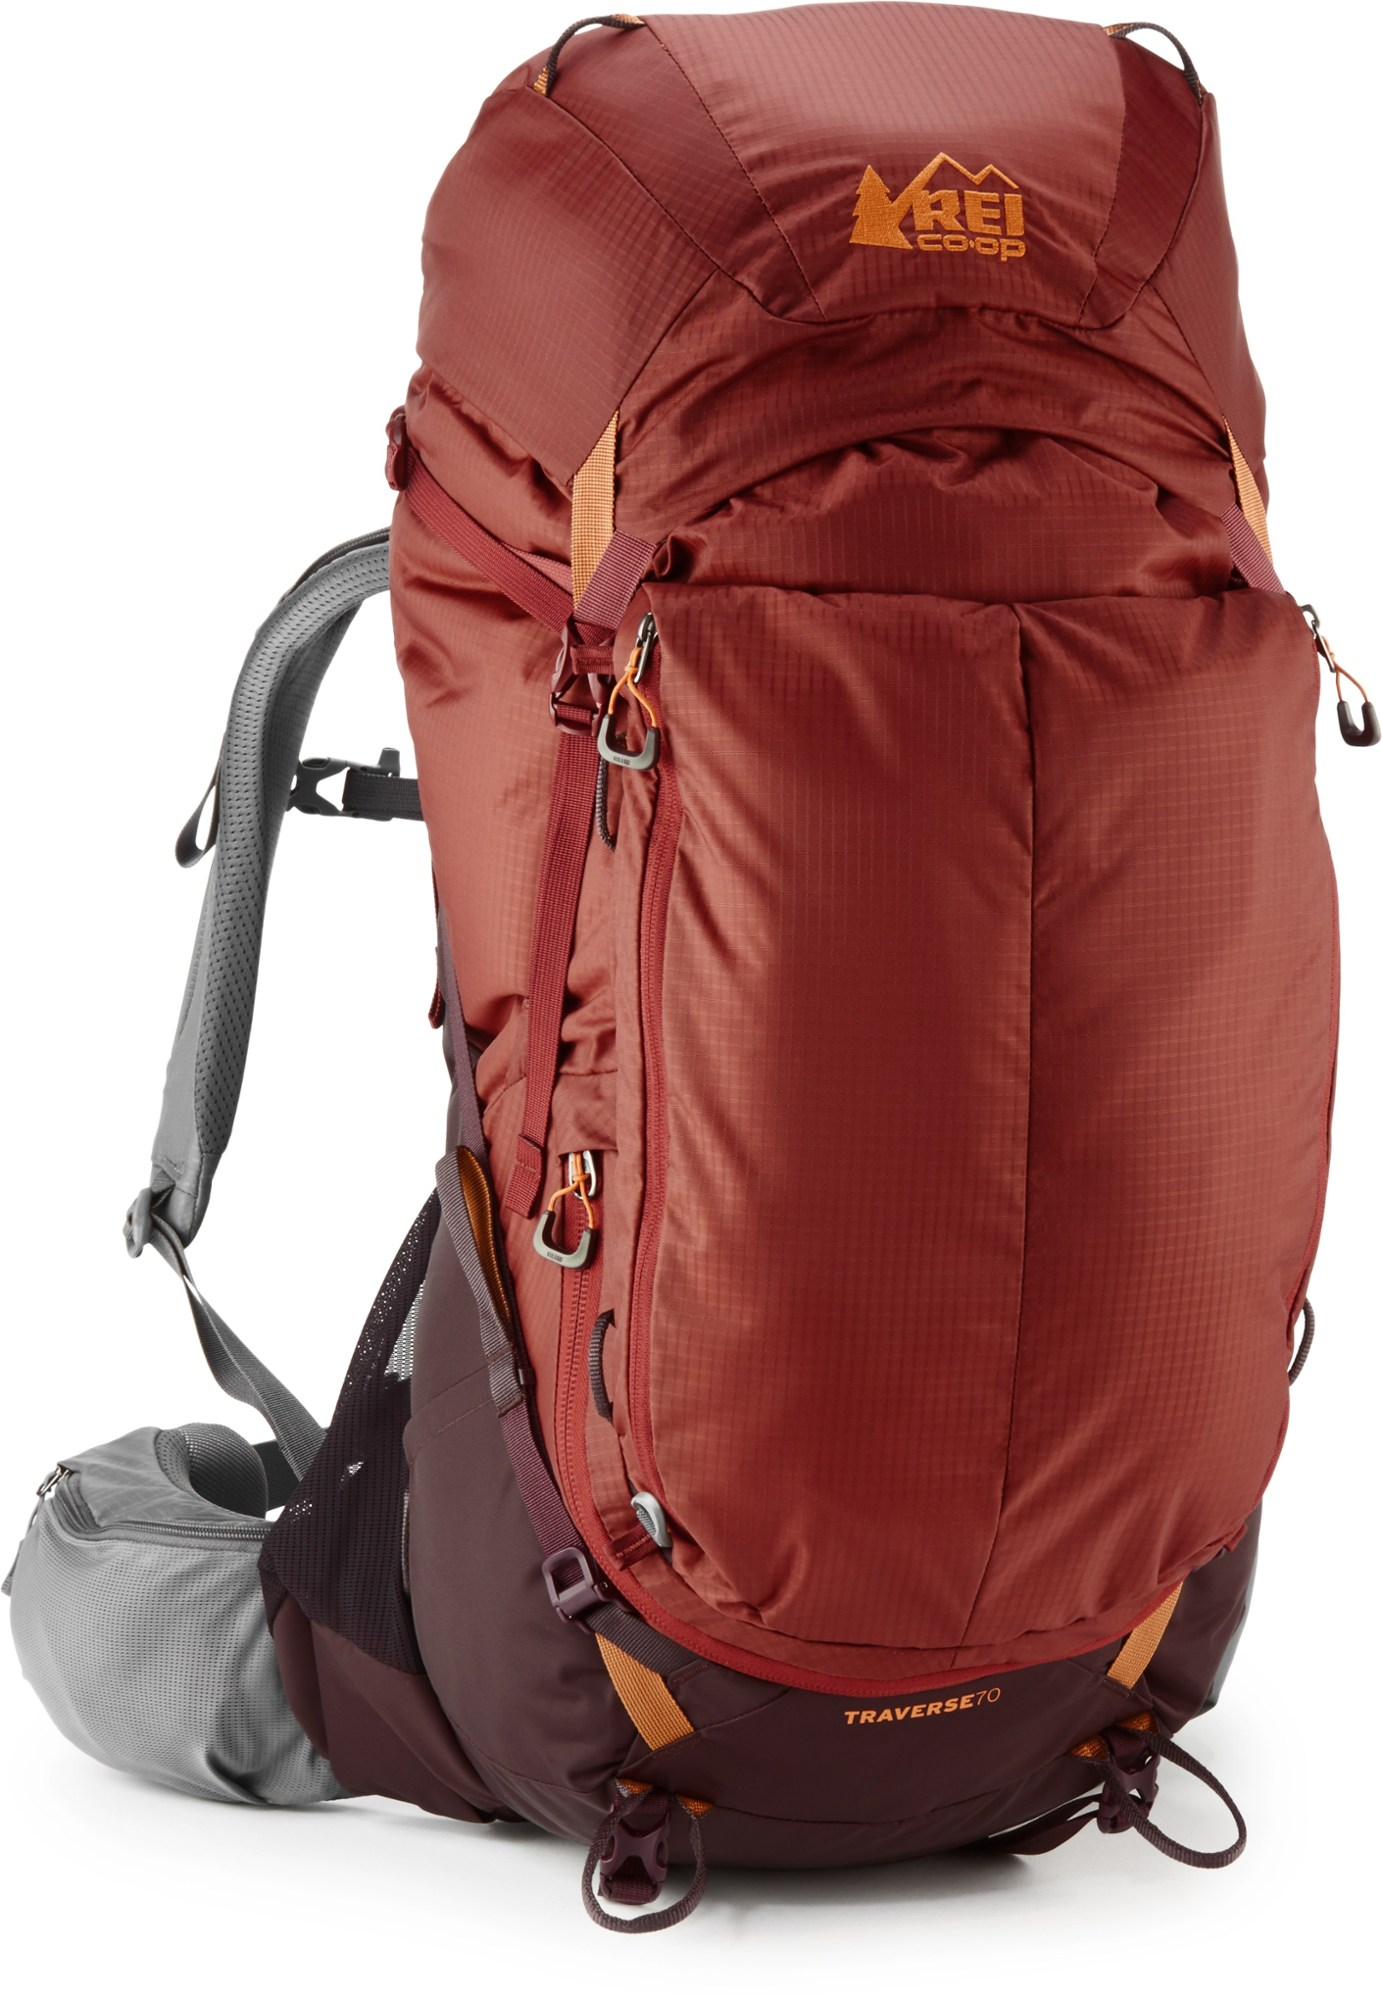 REI Co-op Traverse 70 Pack - Men's